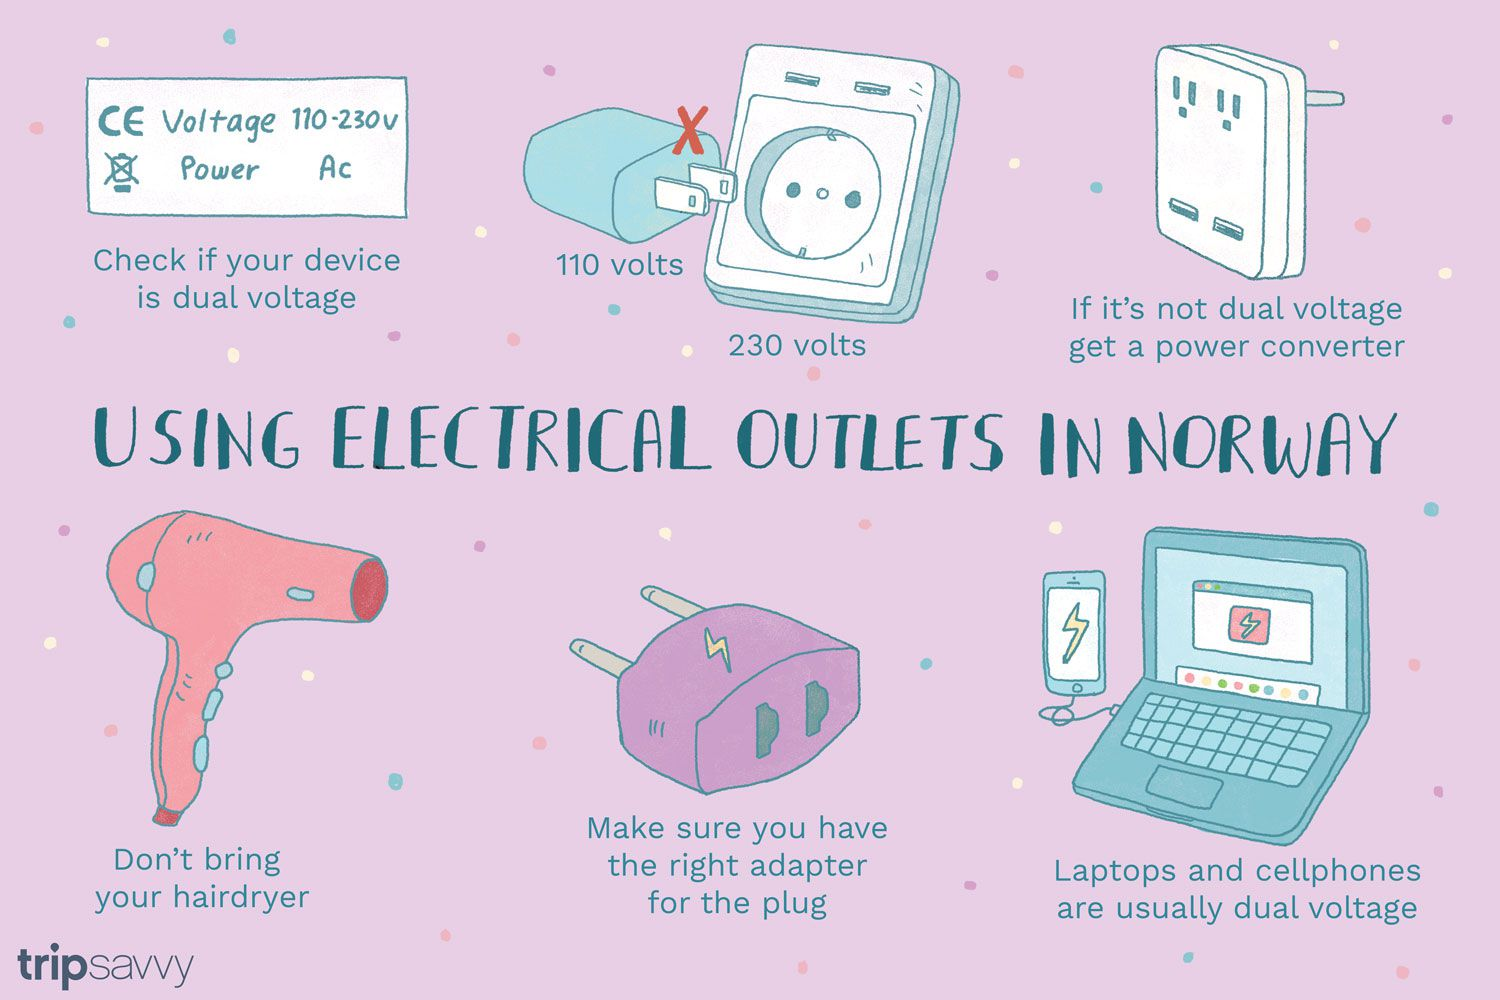 Electrical Outlets That Are Used in Norway